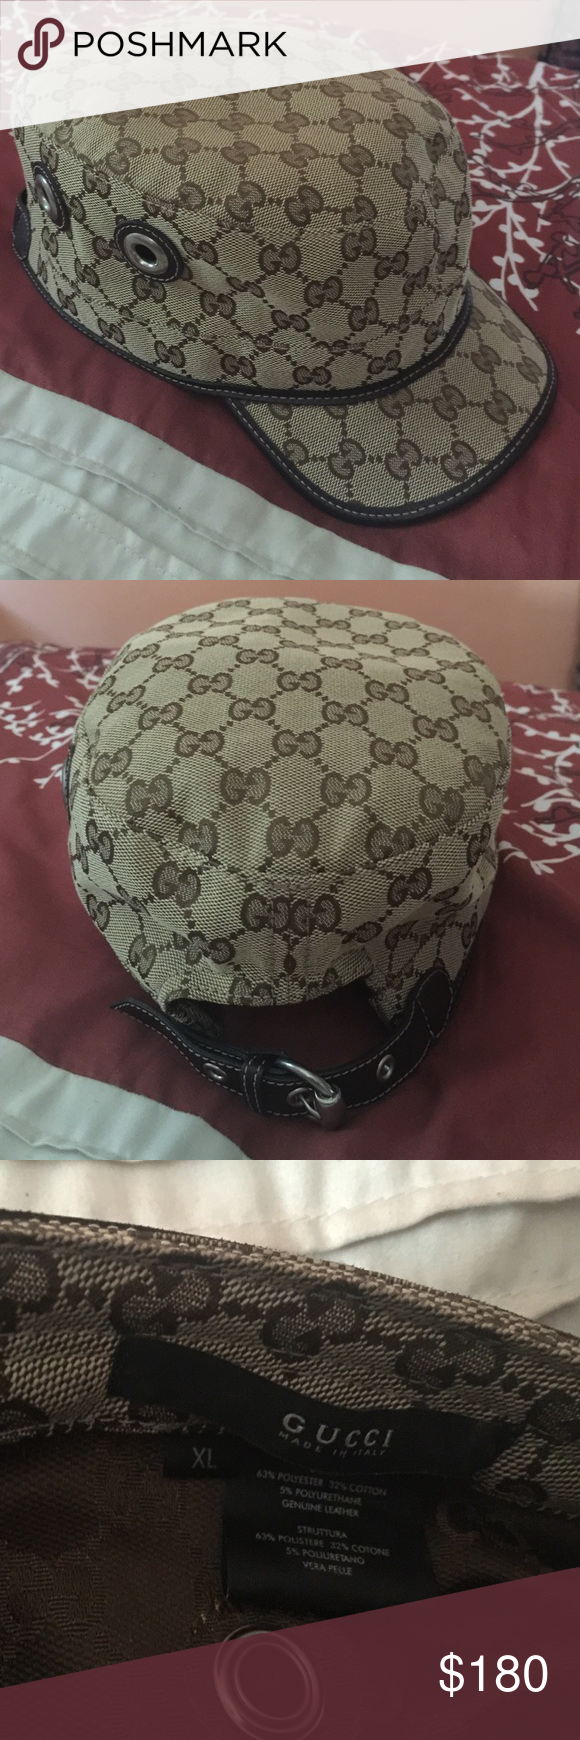 ece90f214f996 Authentic Gucci Canvas Military Hat X-Large! Excellent condition! Beige and  ebony trim and metal details! Made in Italy! Gucci Accessories Hats